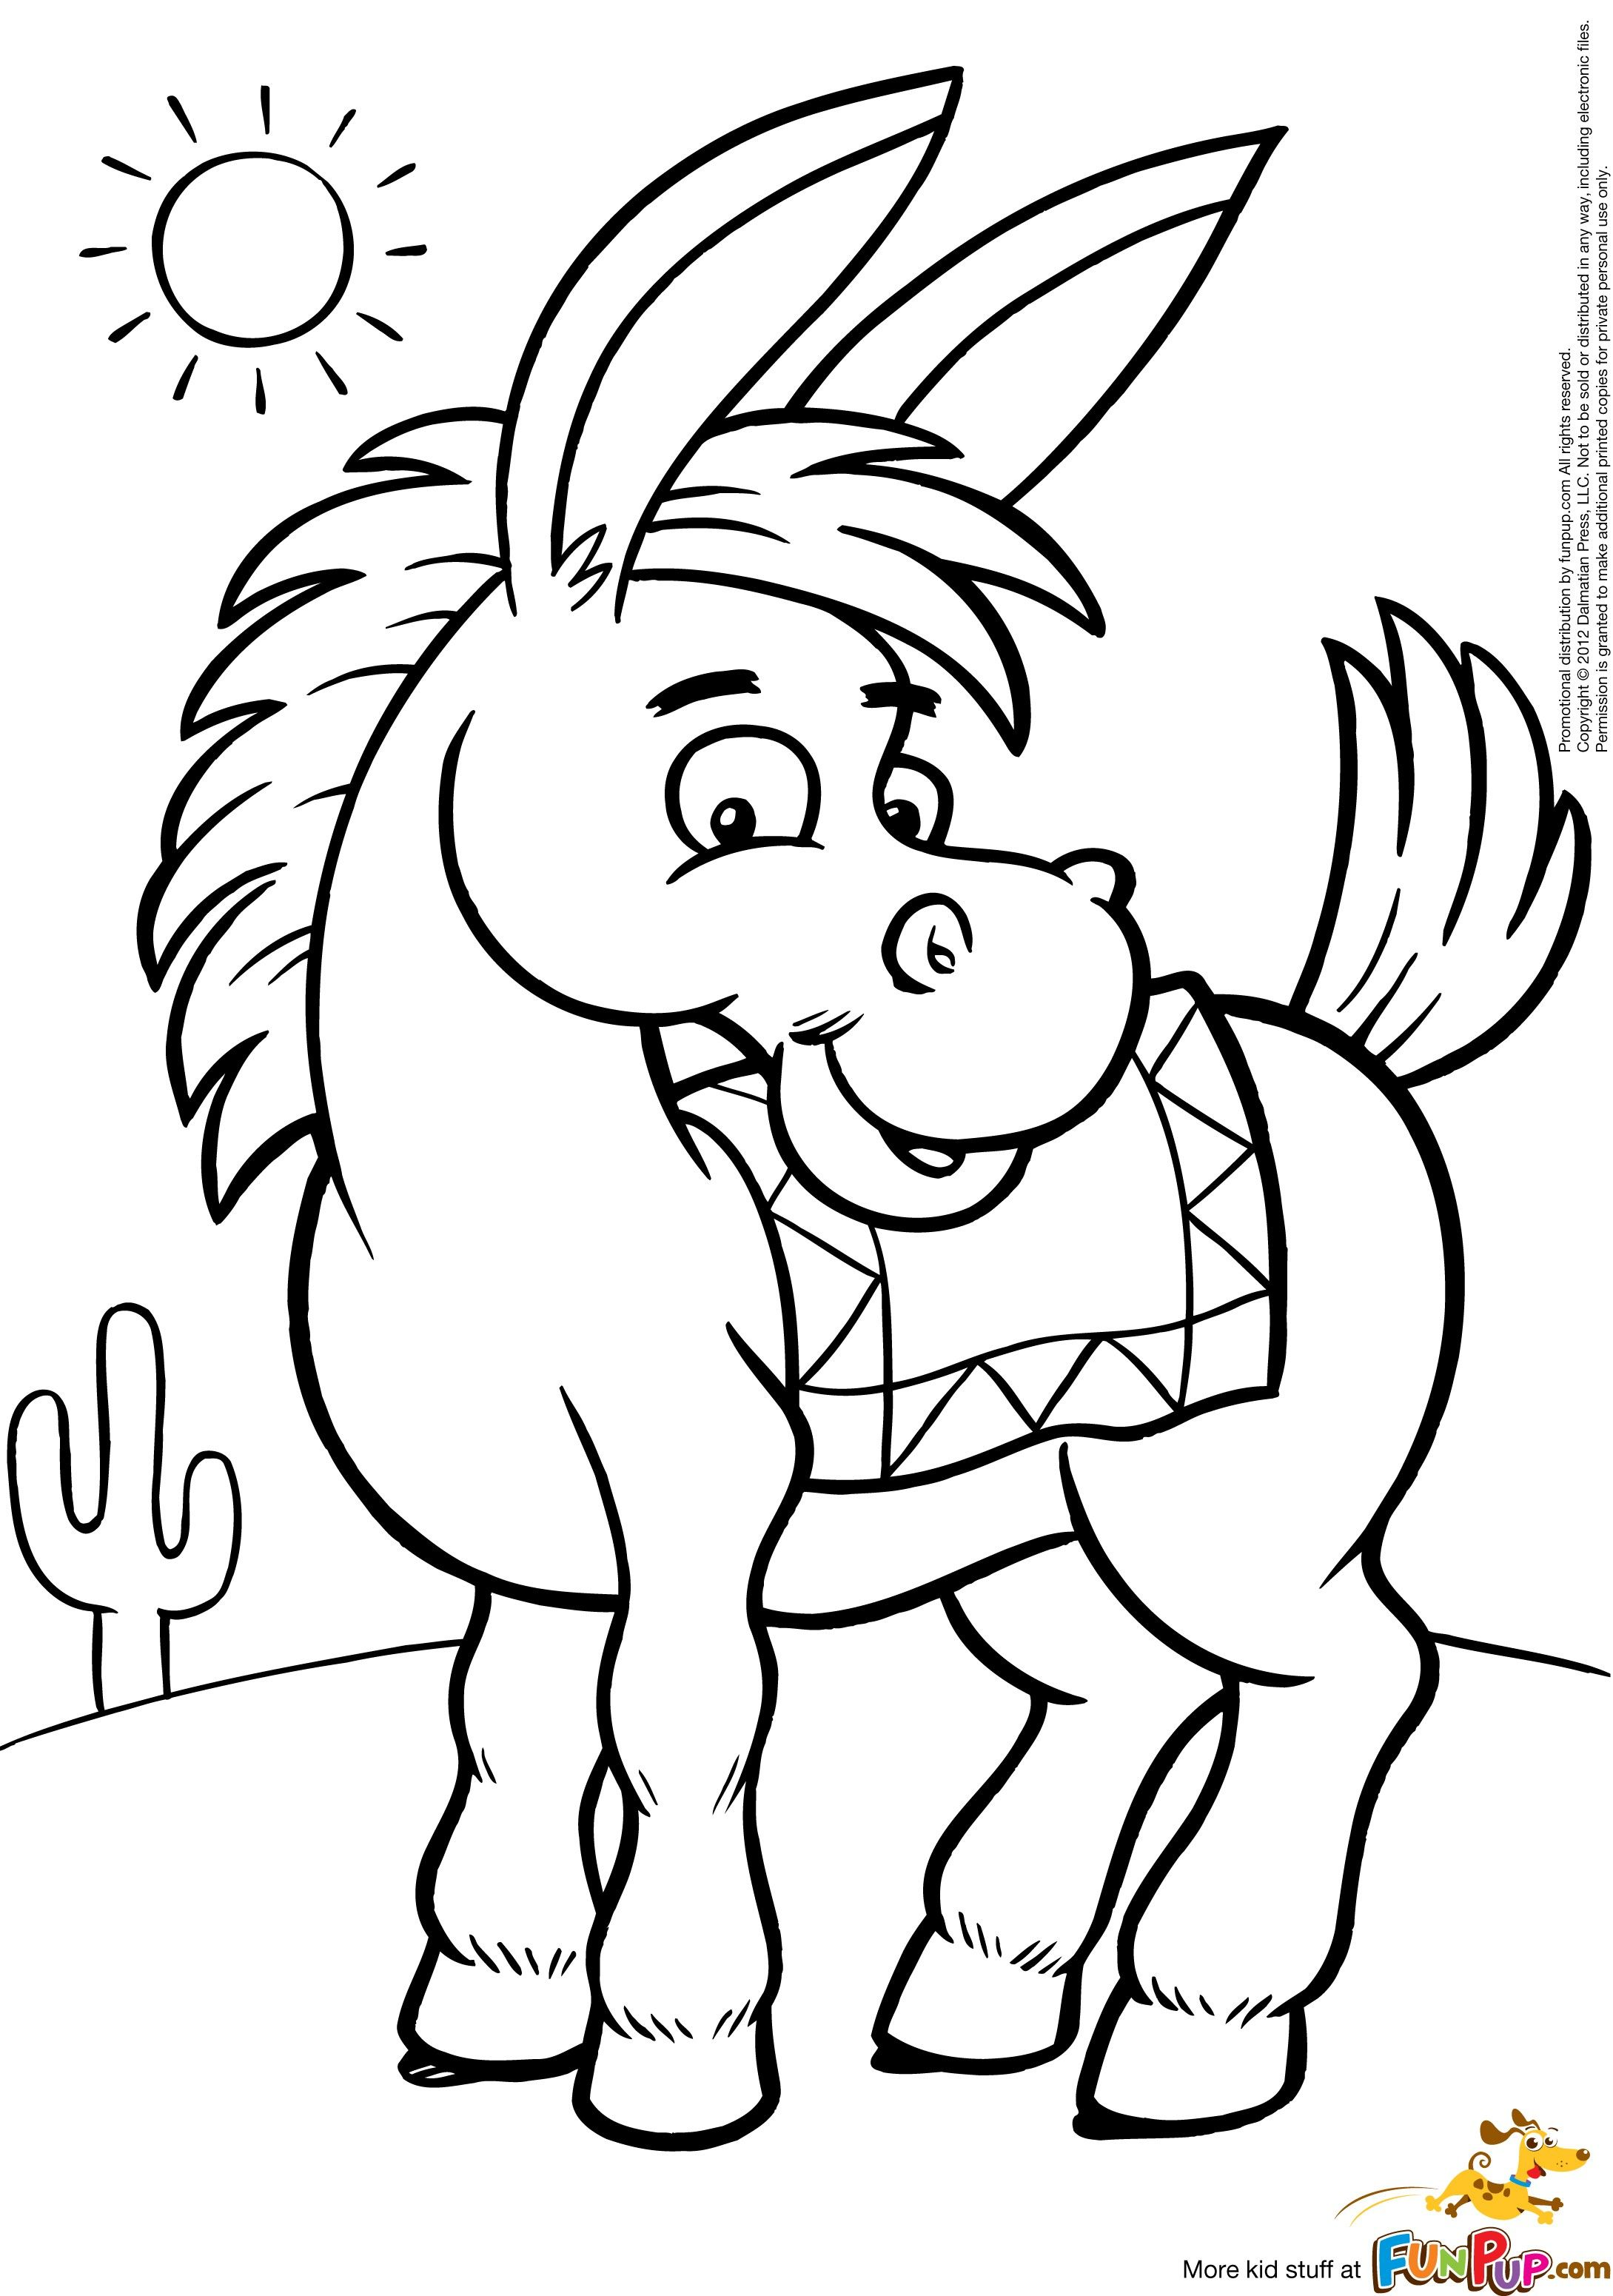 Donkey Coloring Pages Printable Coloring Books Pinterest